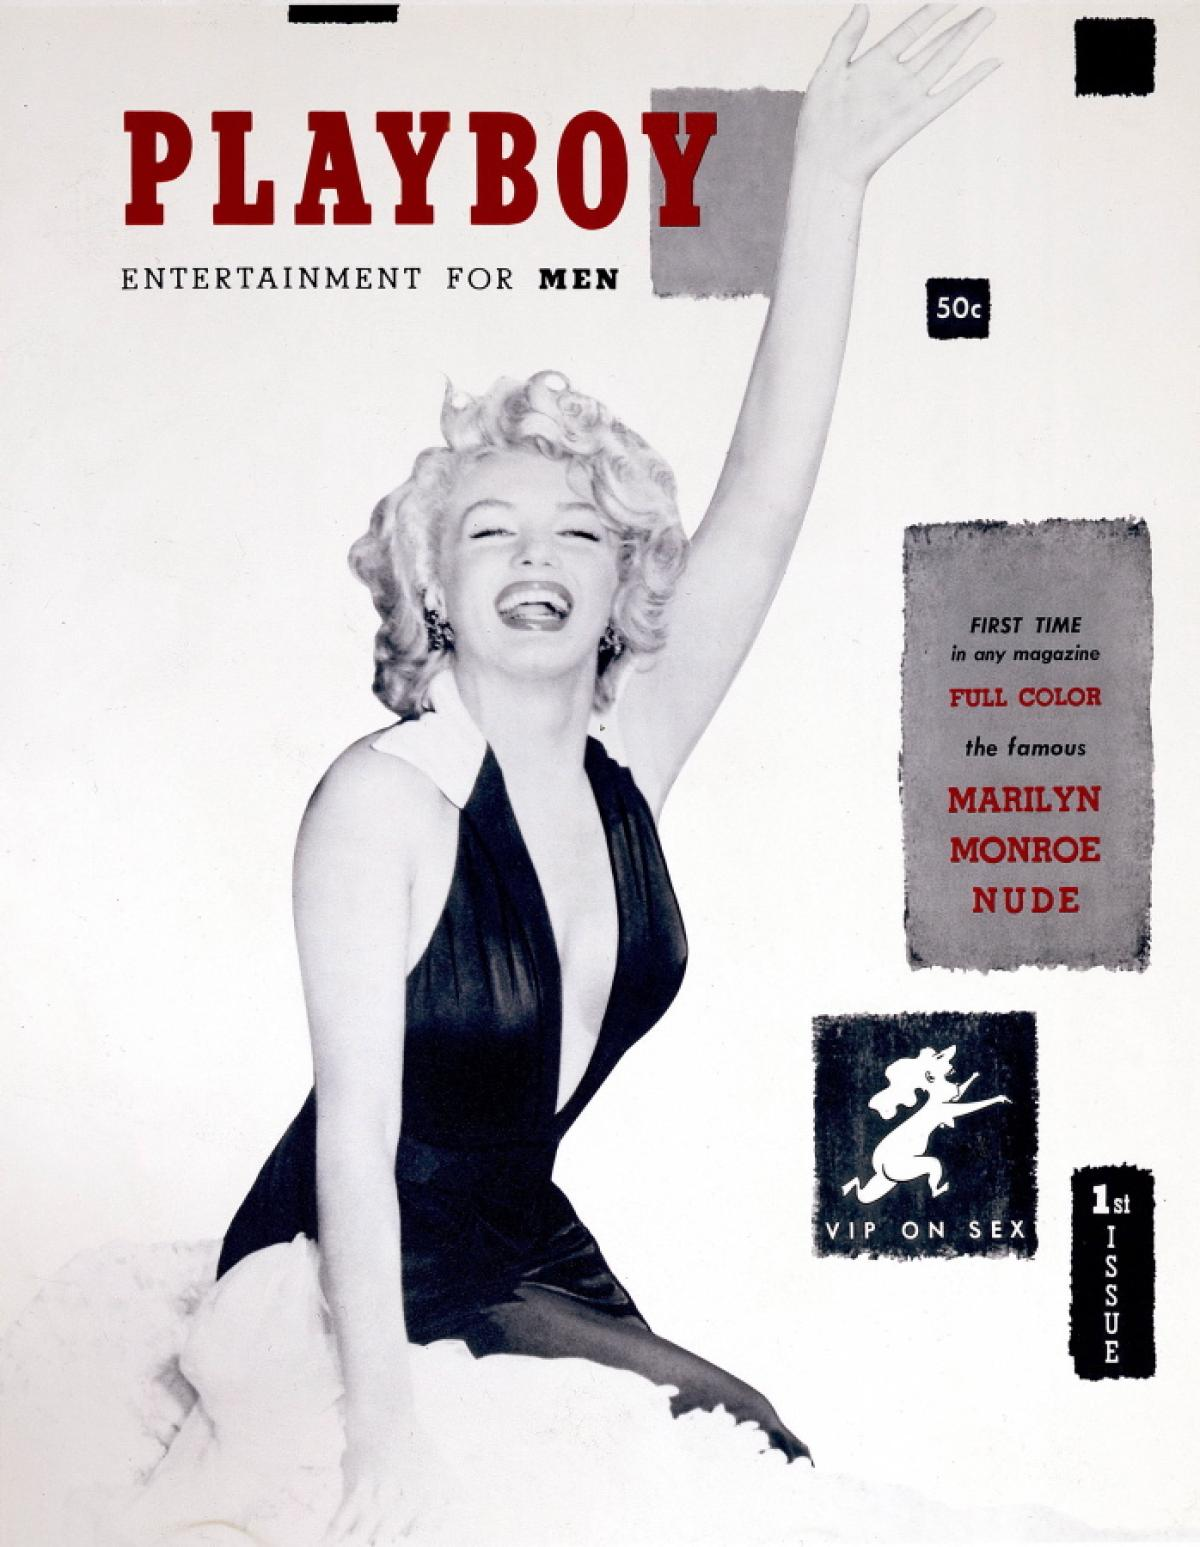 Marilyn Monroe on first Playboy Magazine cover.